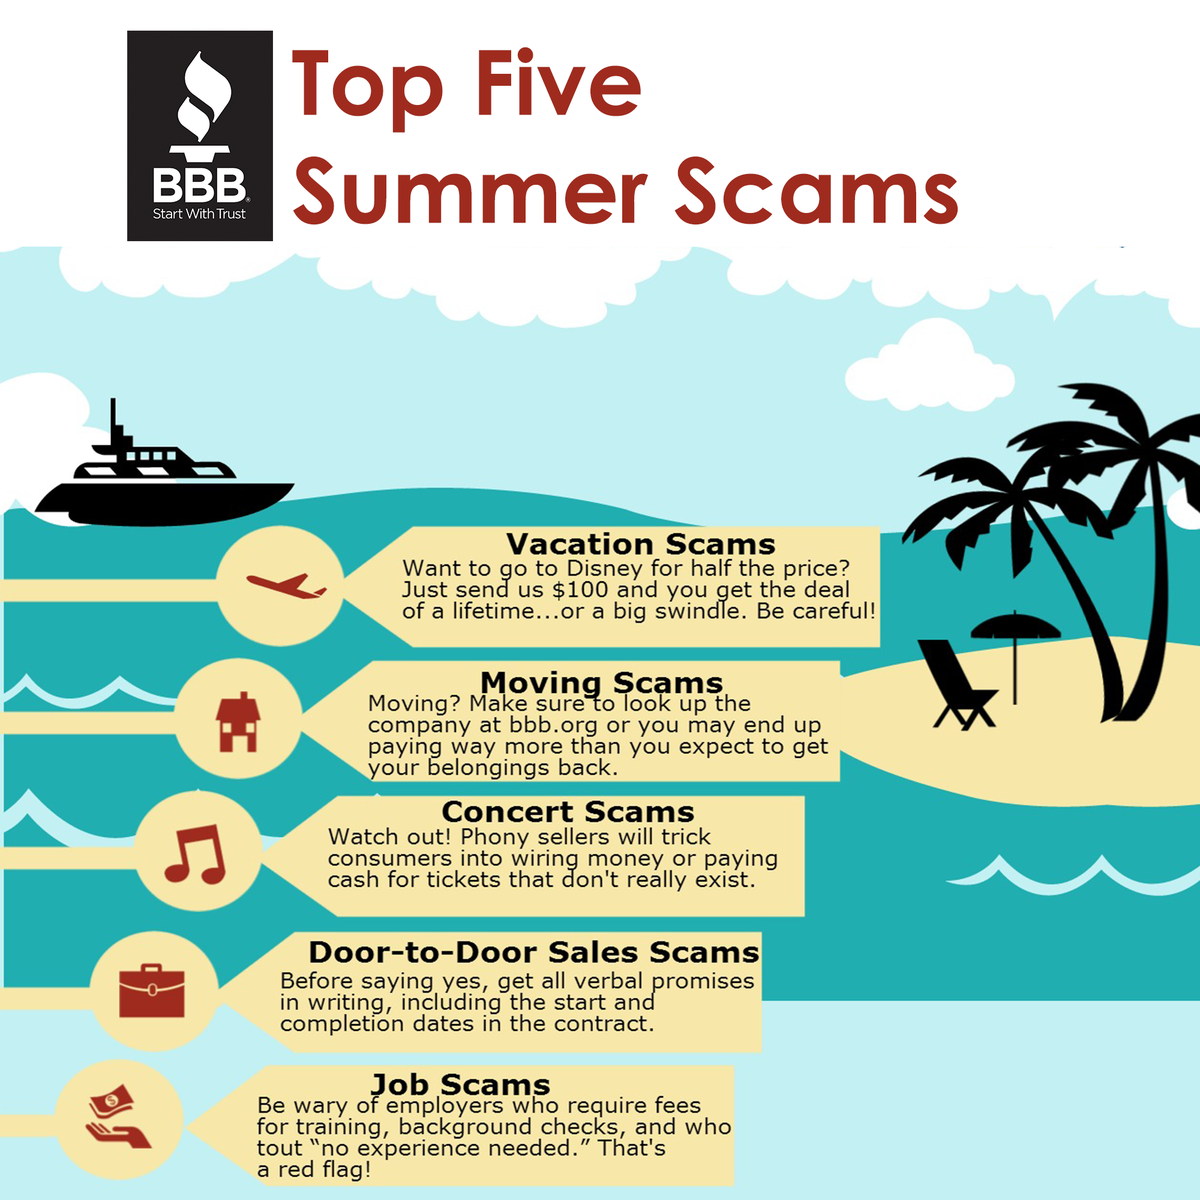 Wiring Money How To Tri State Bbb On Twitter Summer Scams Are The Rise Tell A Friend Summerscams Summervacation Didyouknow